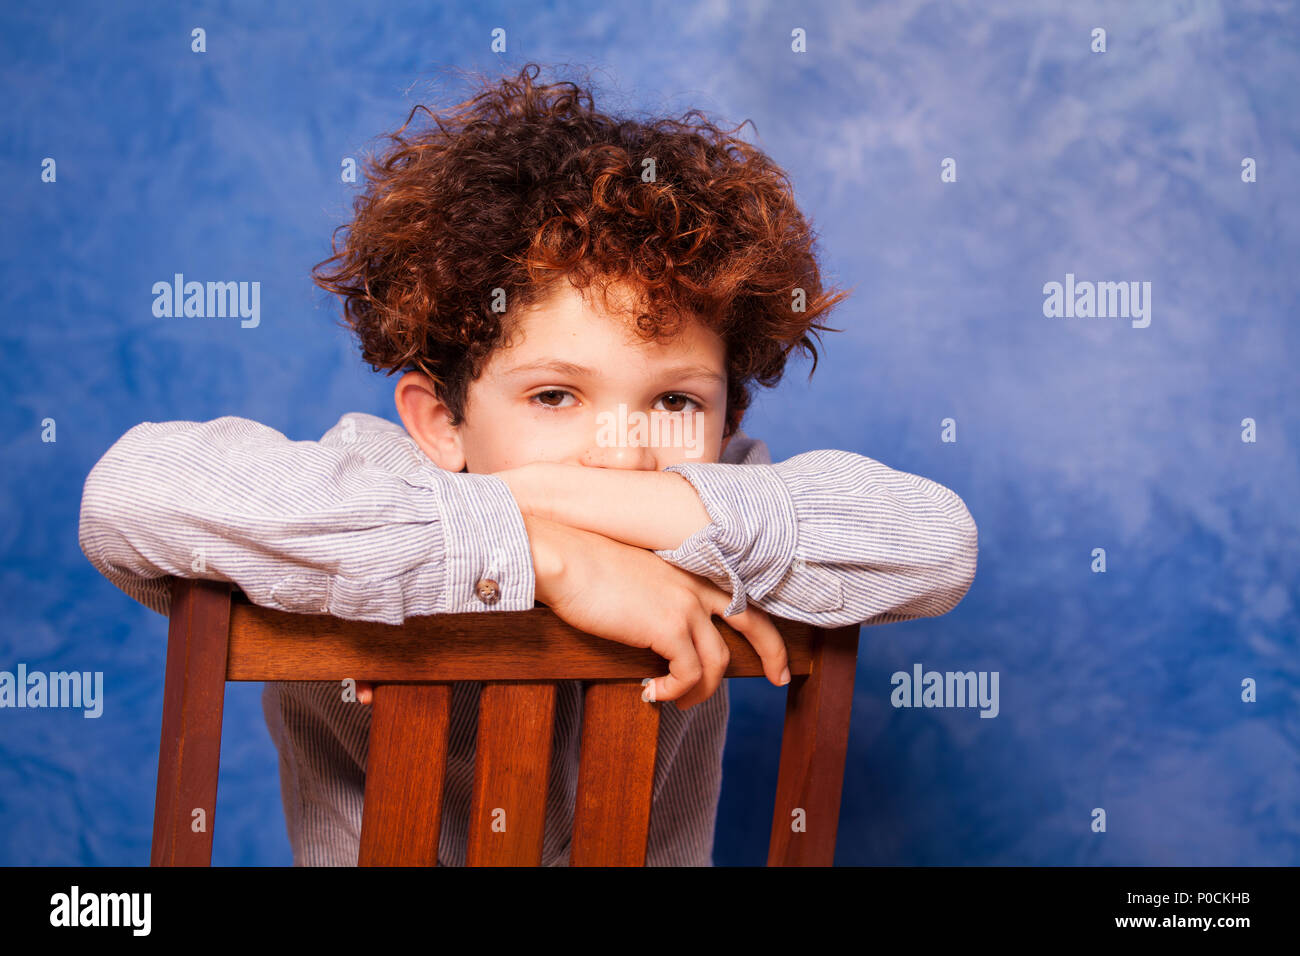 Portrait of cute boy with curly hair sitting backwards on wooden chair against blue background and looking at camera - Stock Image